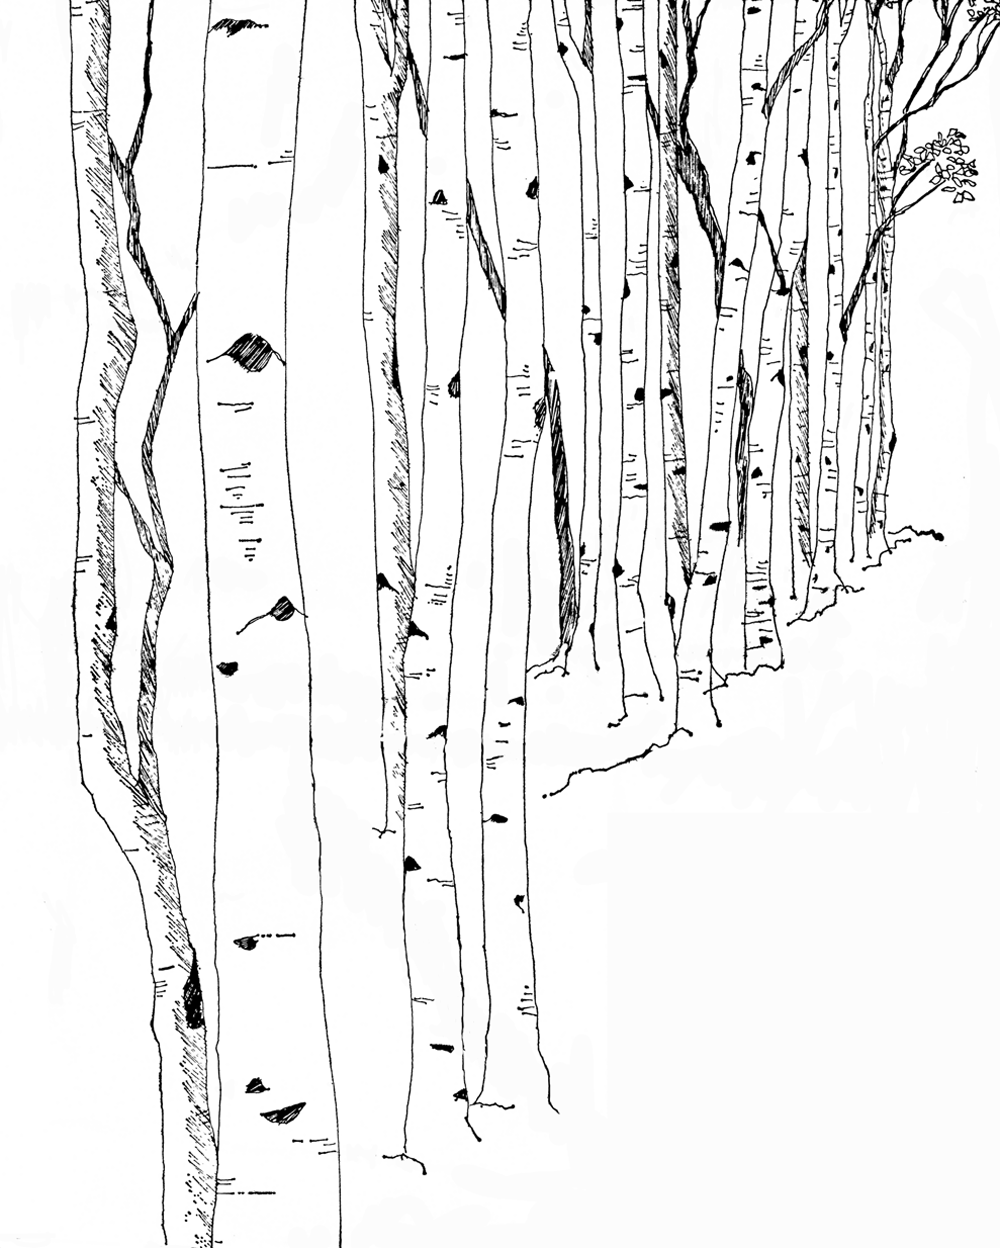 Google Image Result For Http Www Luckypalm Com Wp Content Uploads 2010 01 Birch Trees Png Birch Tree Tattoos White Birch Trees Tree Graphic